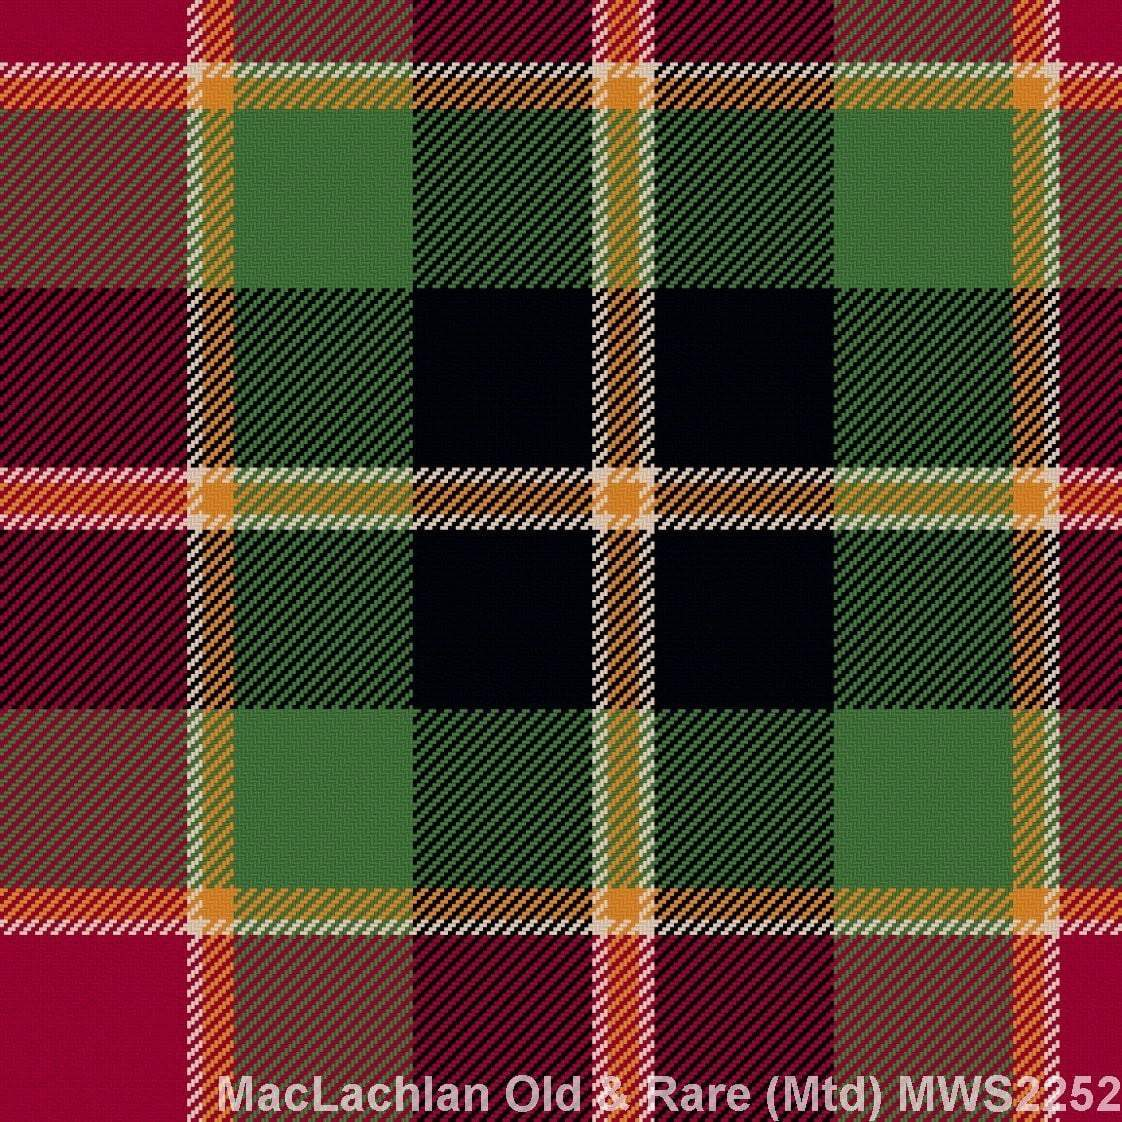 MacLachlan Old and Rare Muted